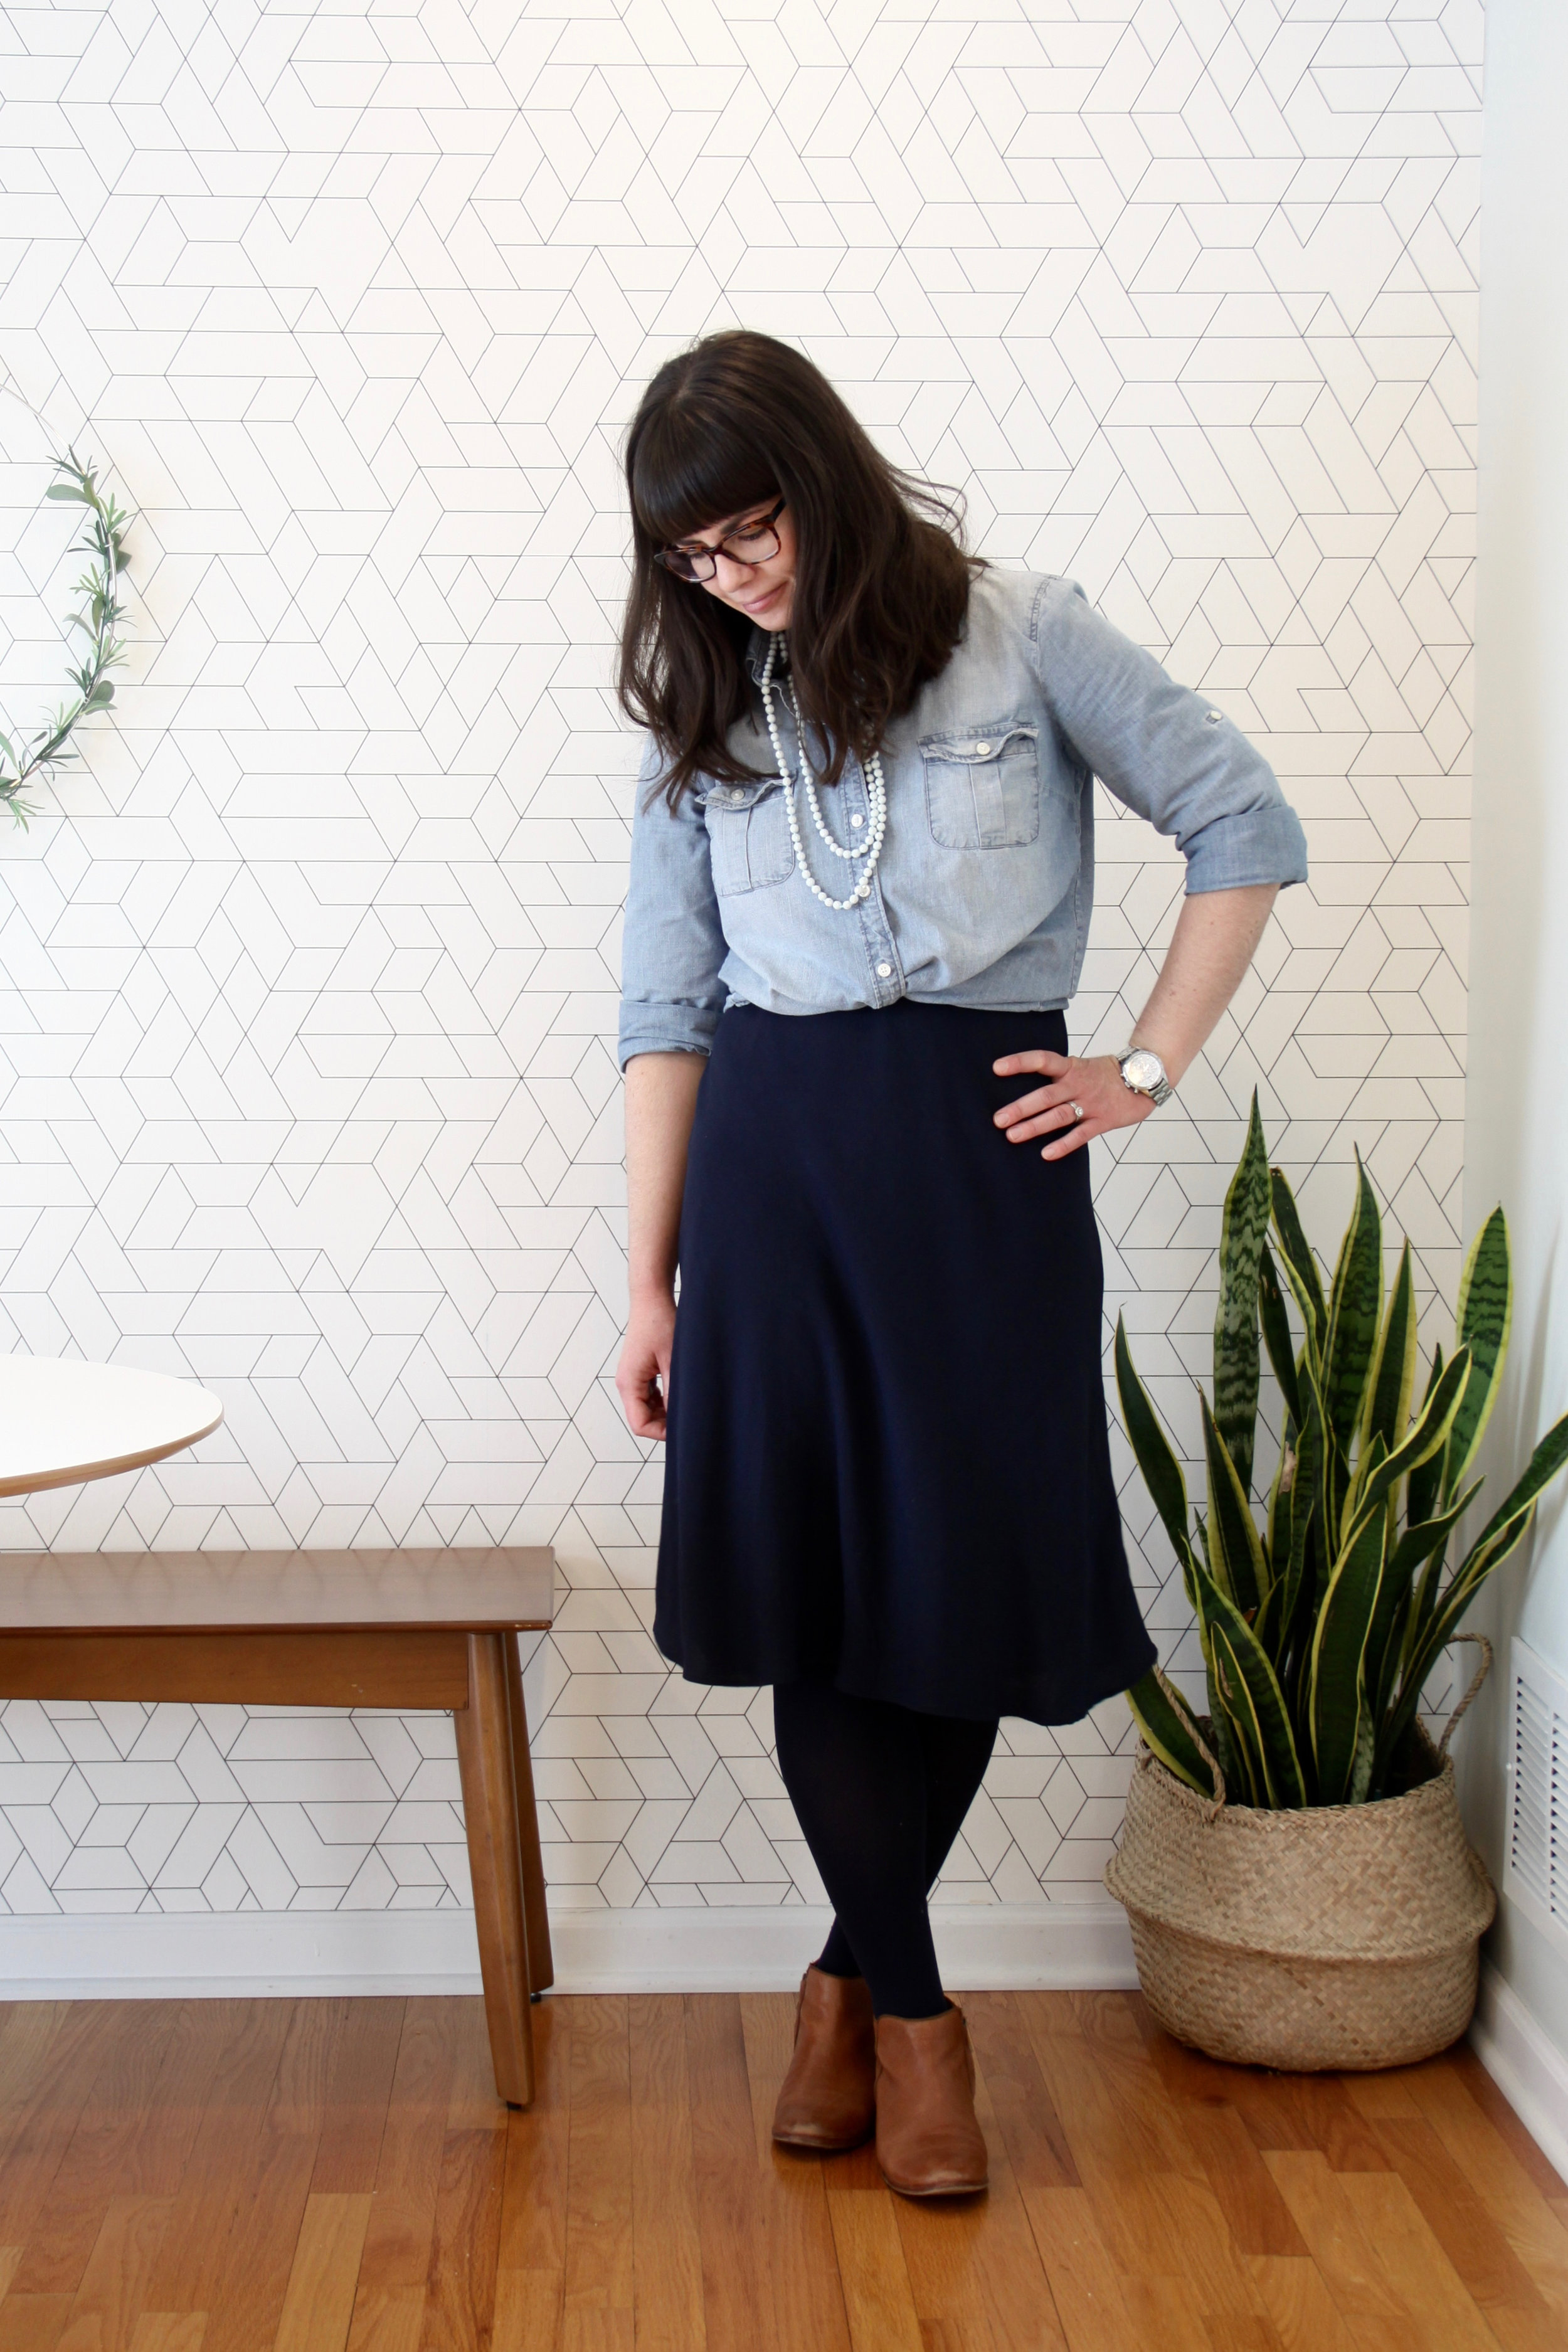 Spring 10 x 10 Navy Crepe Dress with Chambray Shirt